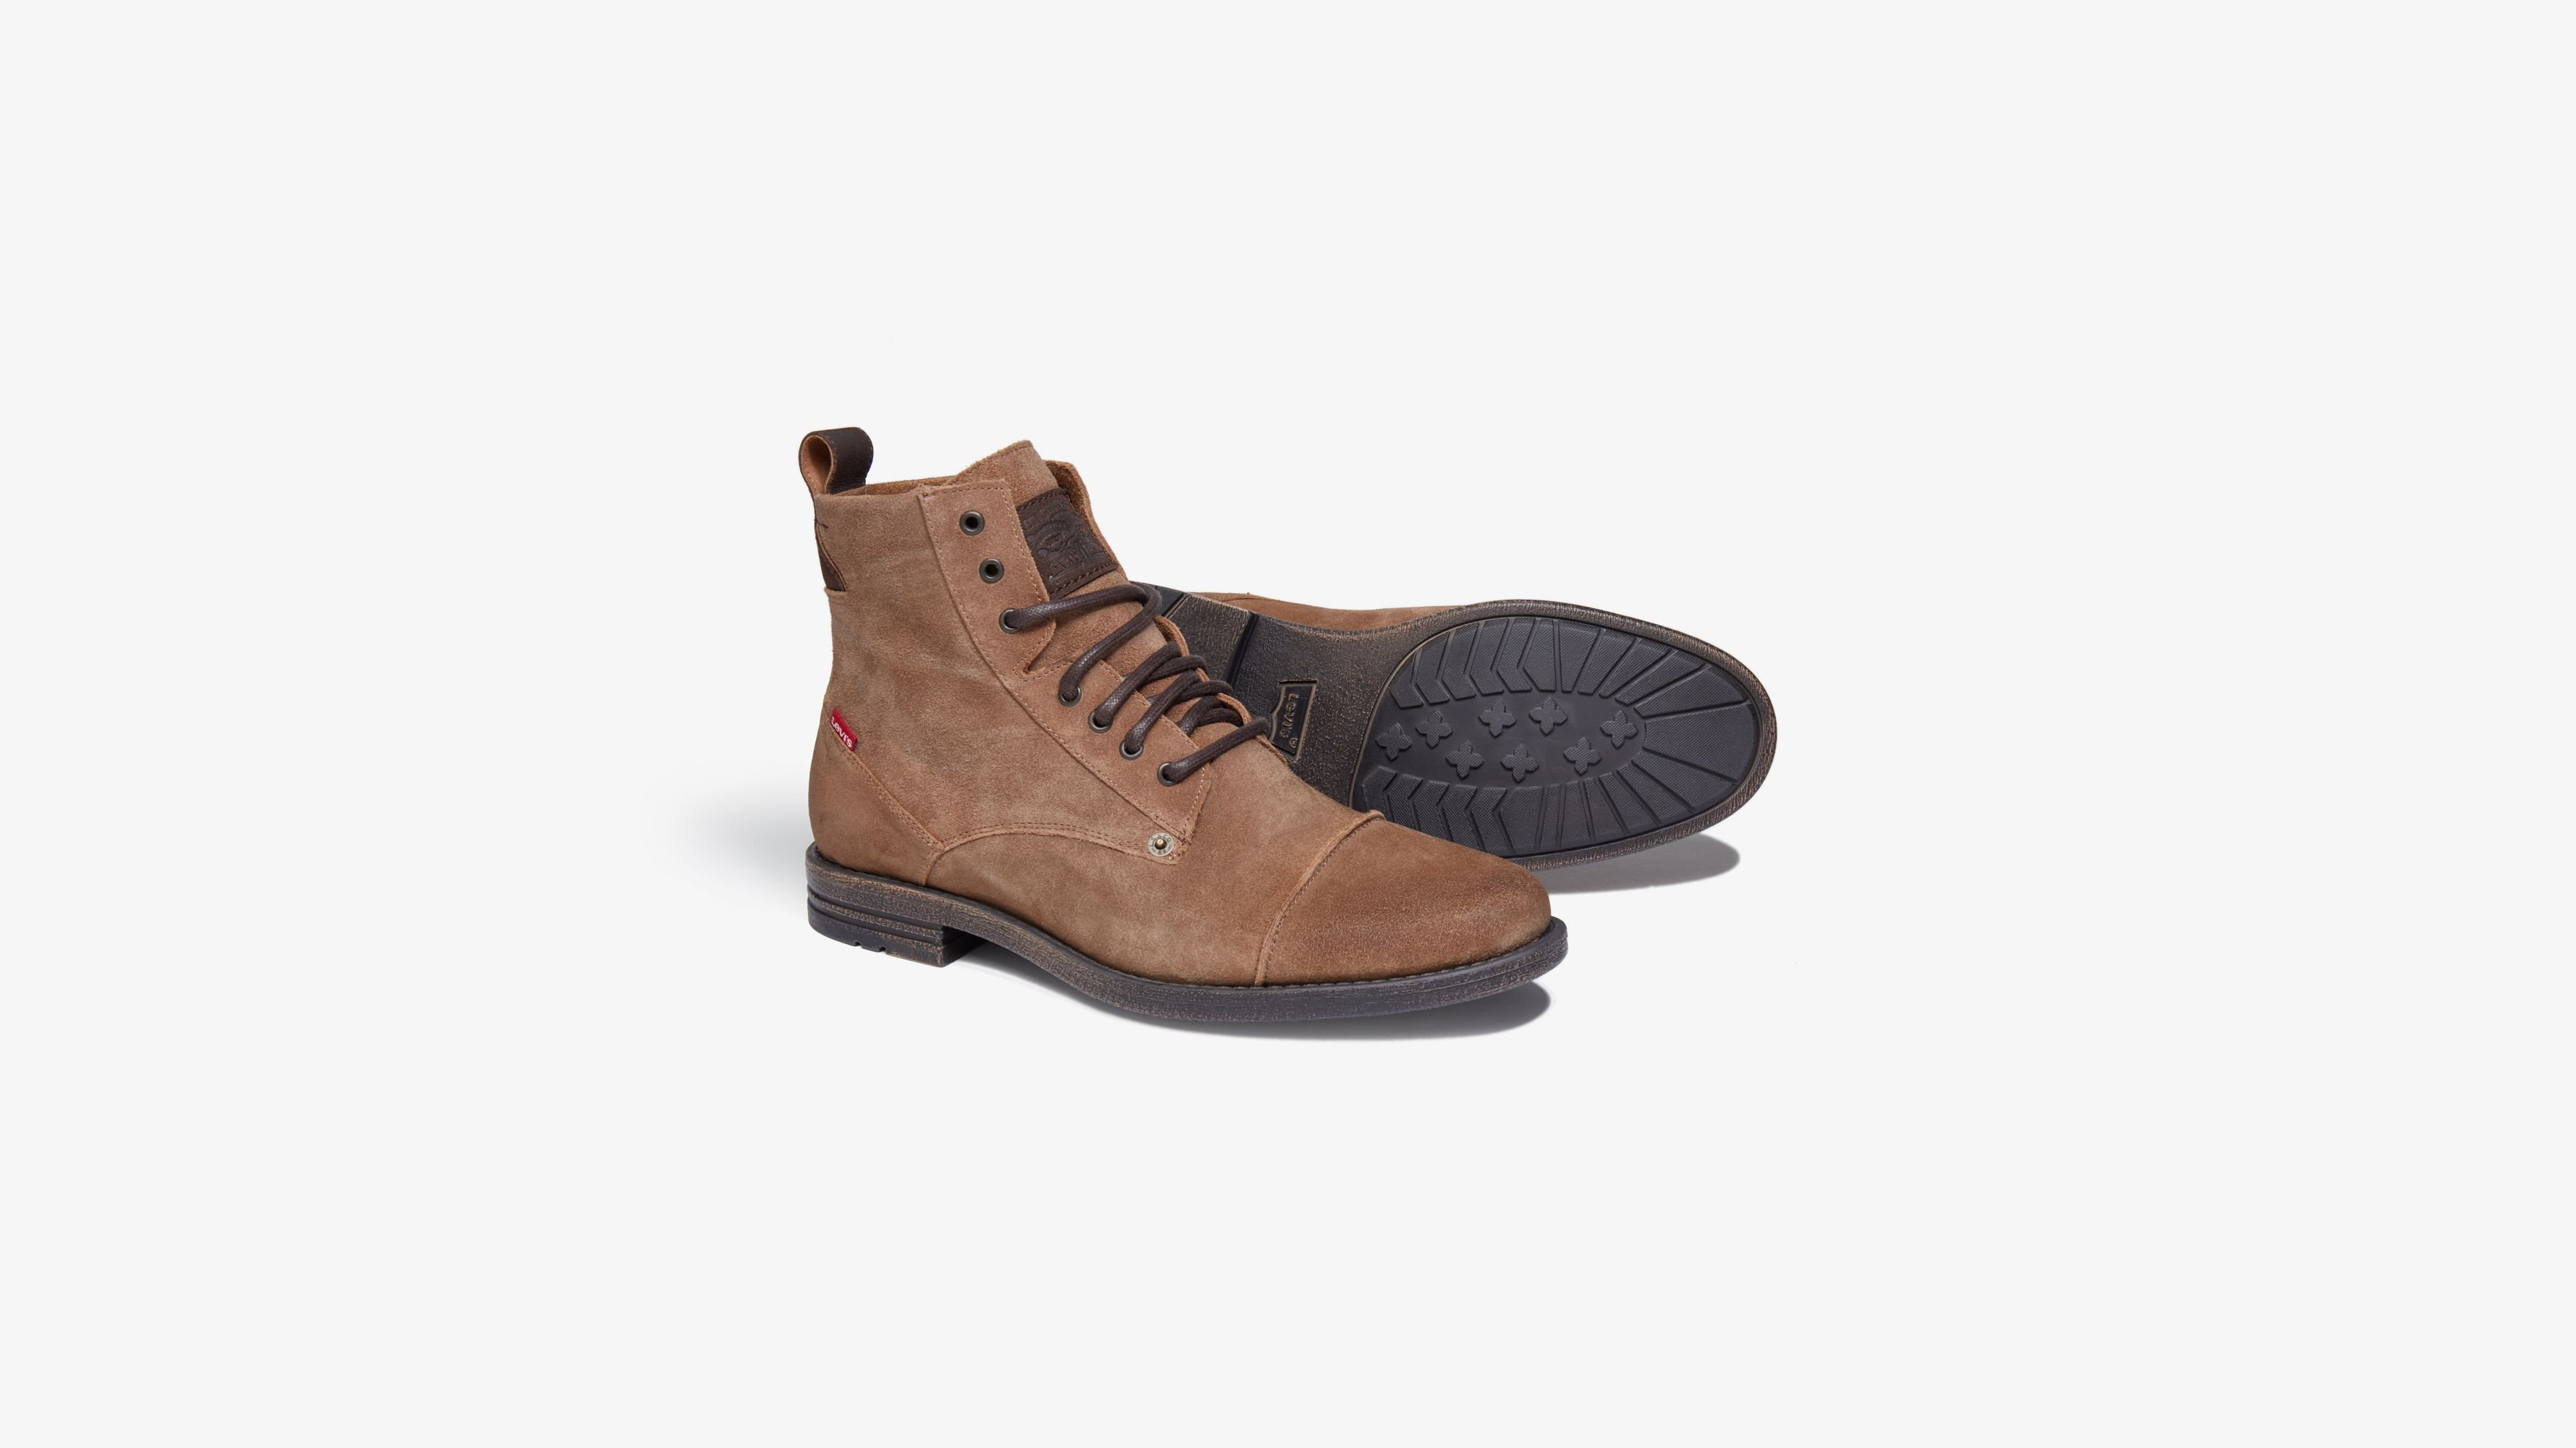 Emerson Wxfuca7 Levi's® Be Marron Shoes 5aaxqHUg